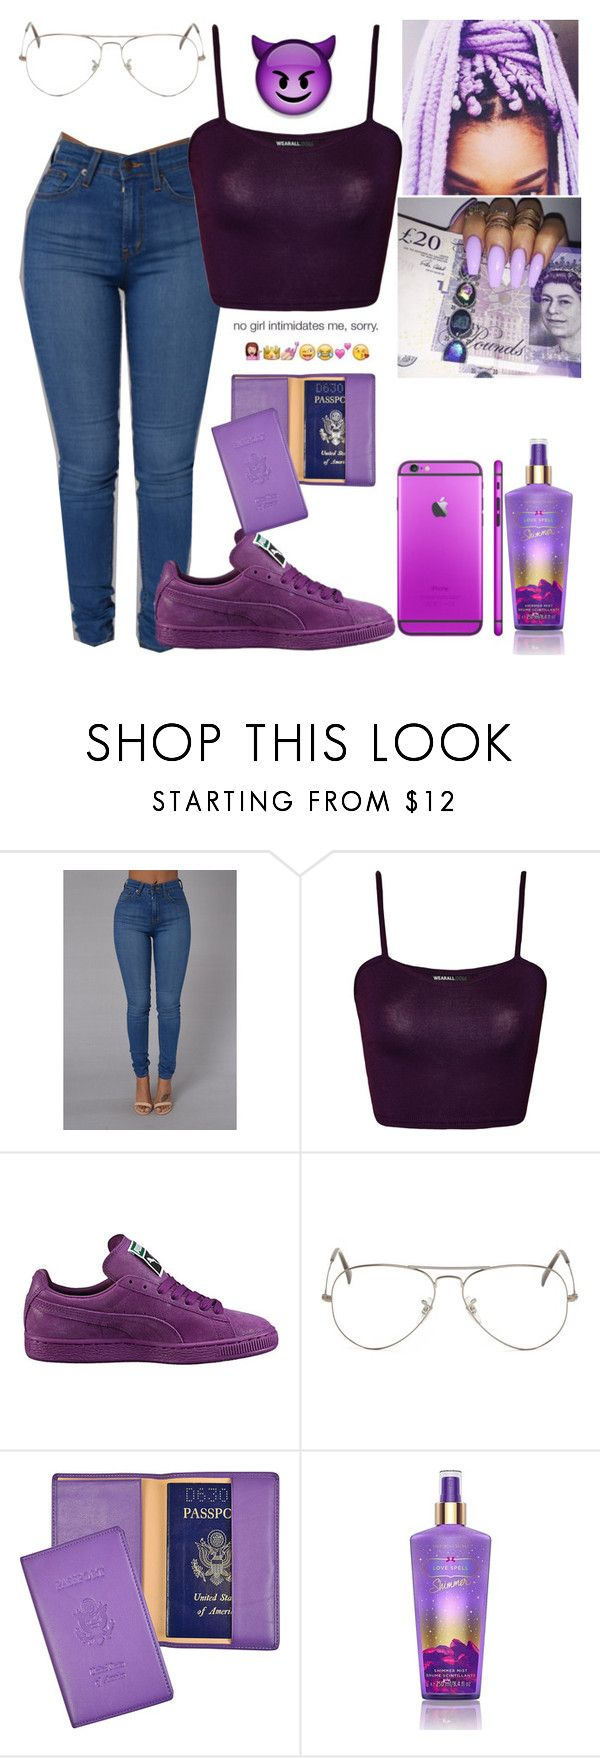 """FEELIN IT"" by kimah101 ❤ liked on Polyvore featuring WearAll, Puma, Ray-Ban, Royce Leather and Victoria's Secret"